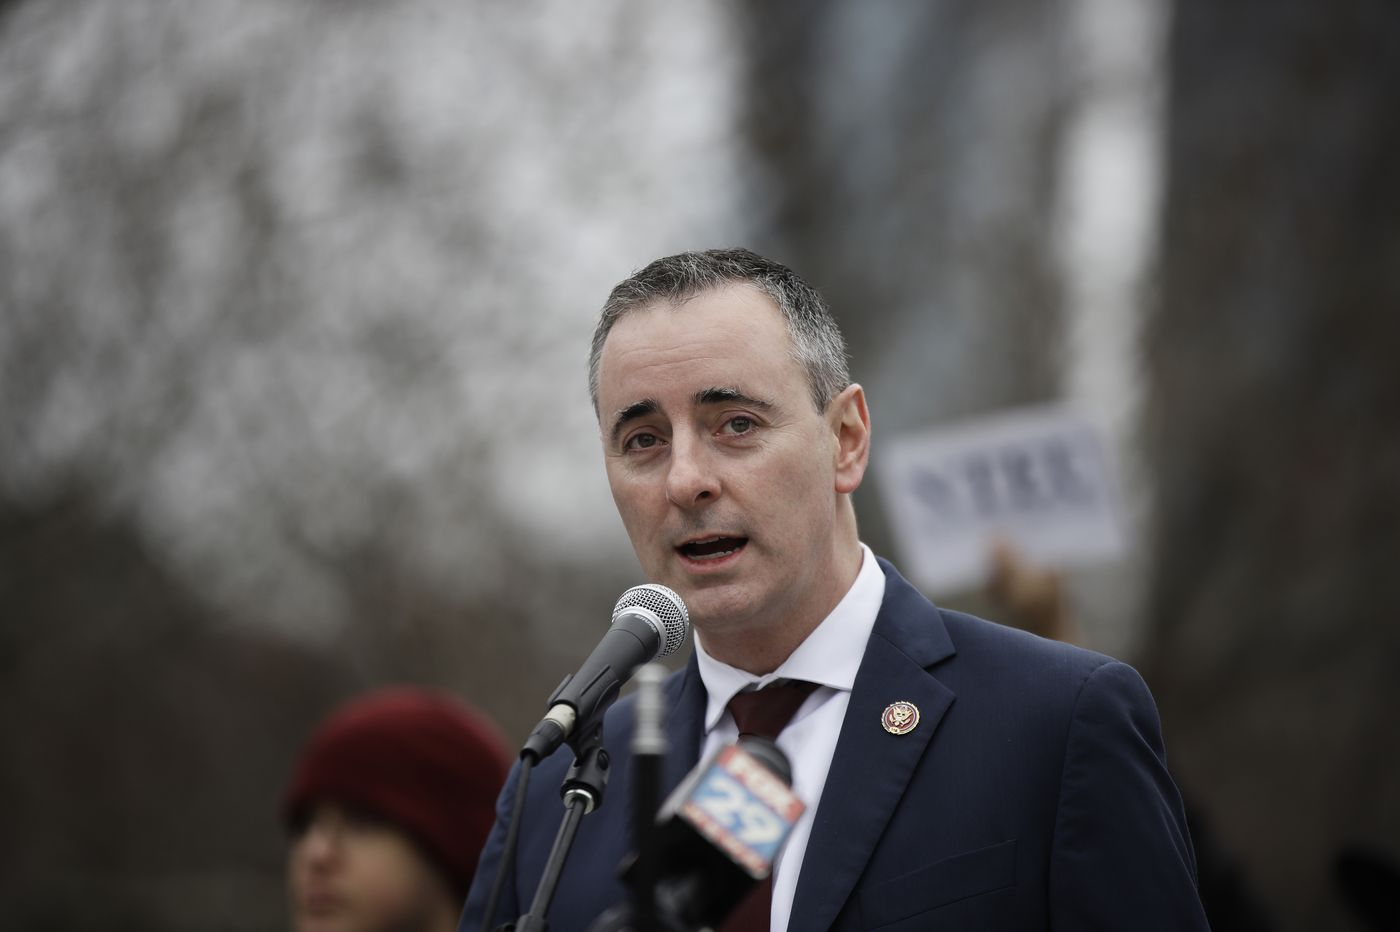 'Stop putting politics ahead of our country' on Trump impeachment, veterans tell GOP Rep. Brian Fitzpatrick in new ad